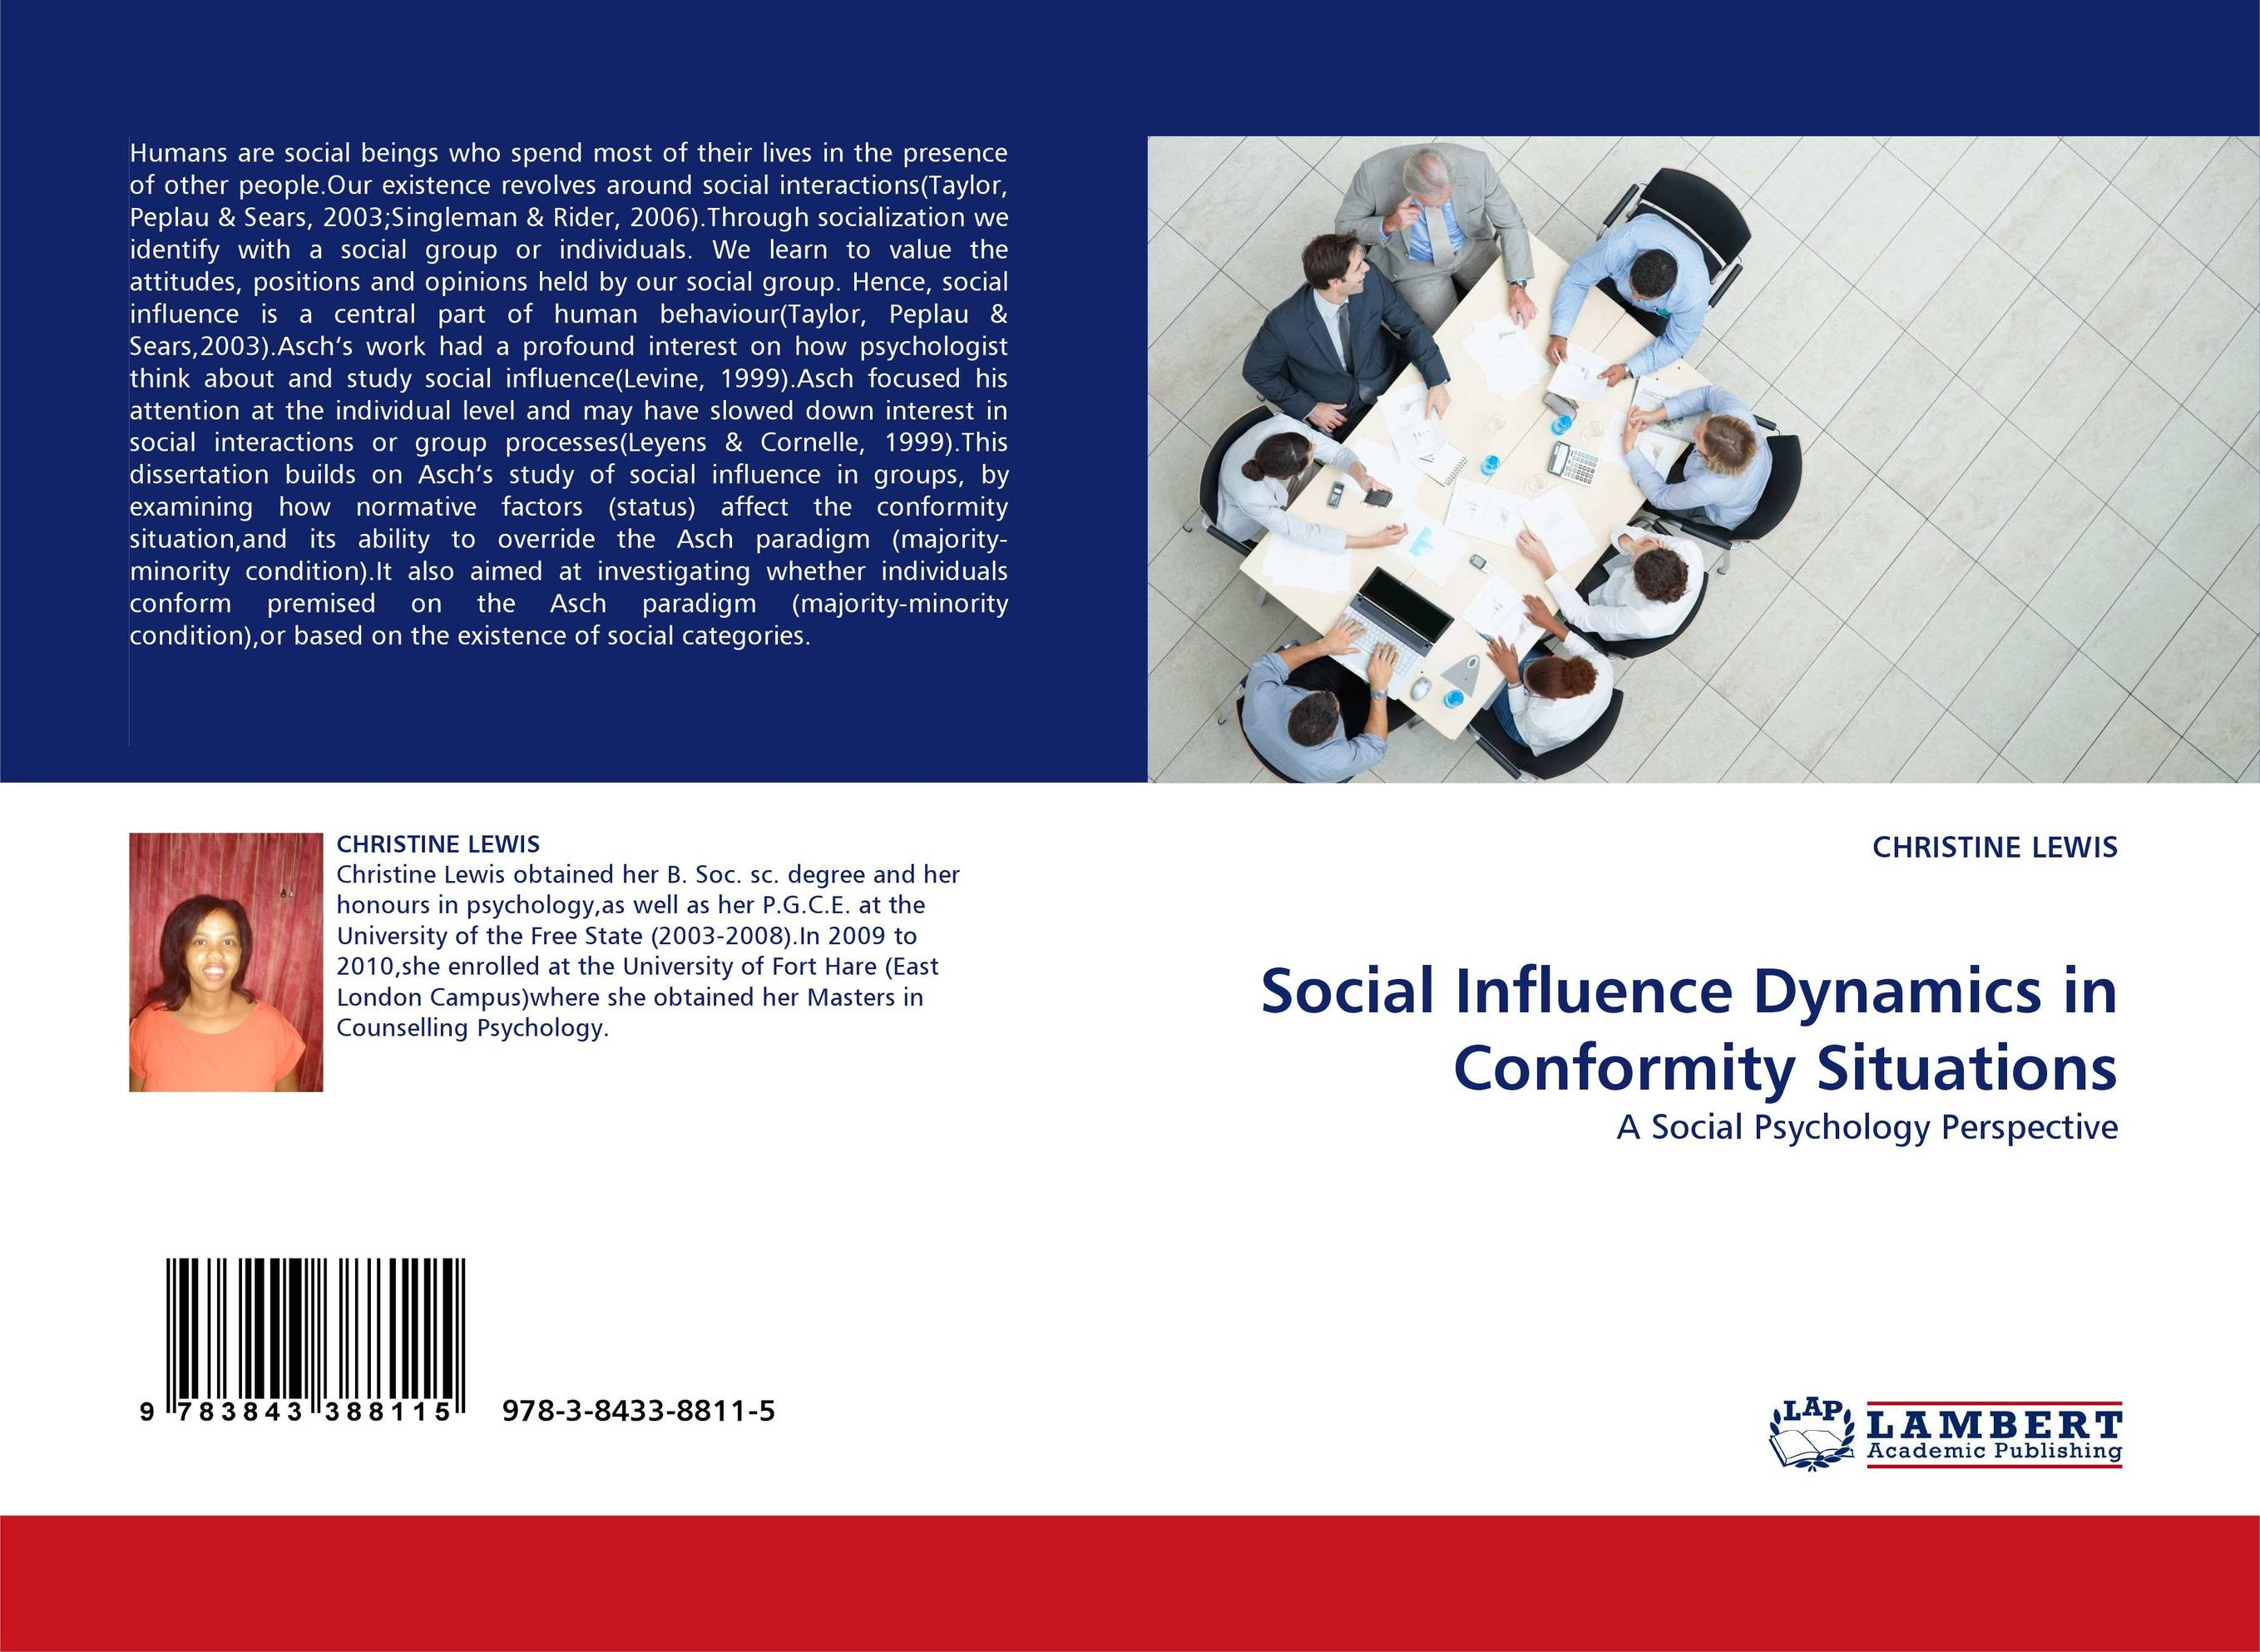 psychology of social influence Social psychology is the scientific study of how people's thoughts, feelings, and behaviors are influenced by the actual, imagined, or implied presence of others the terms thoughts, feelings, and behaviors include all of the psychological variables that are measurable in a human being.